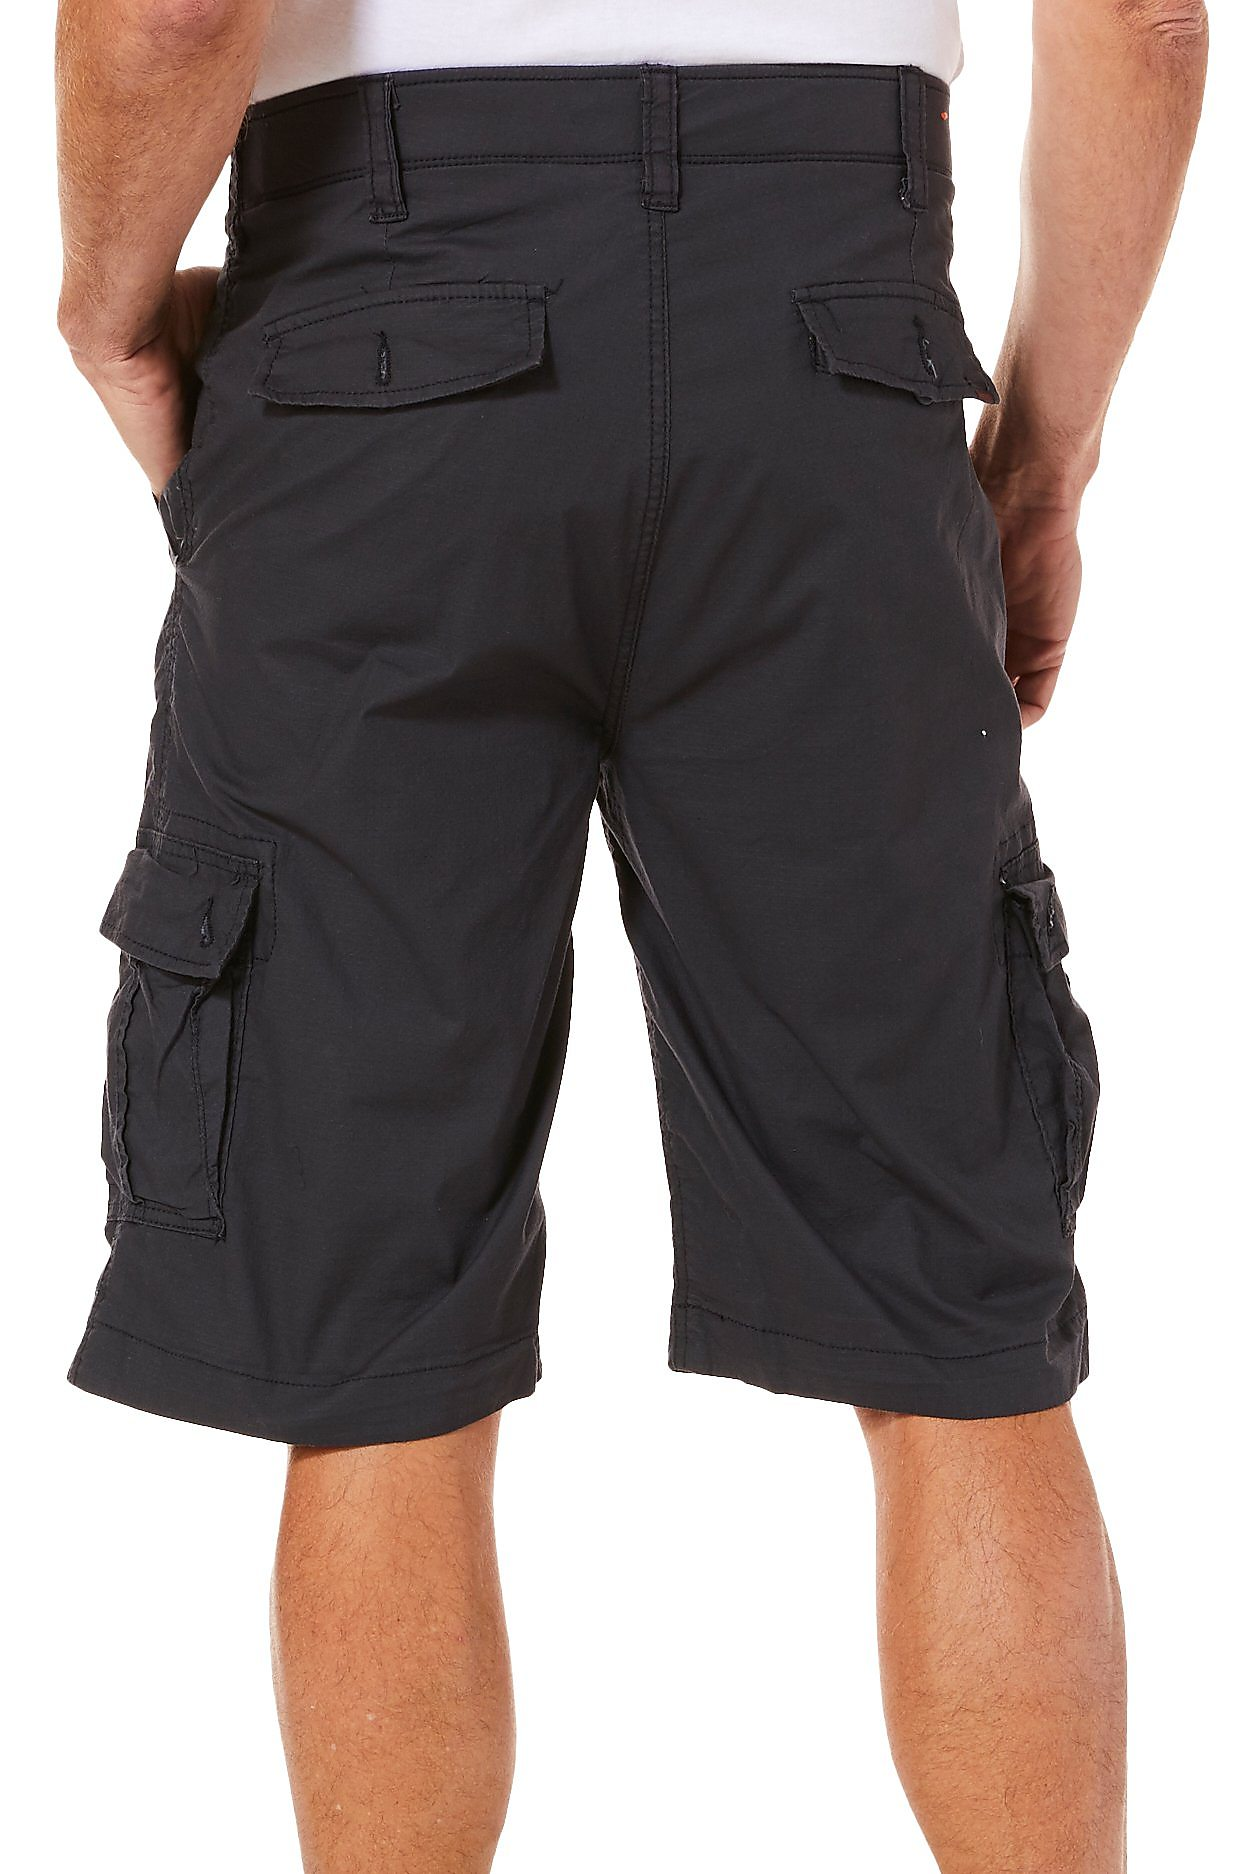 14a8d80f8d Wearfirst-Mens-Solid-Ripstop-Cargo-Shorts thumbnail 5